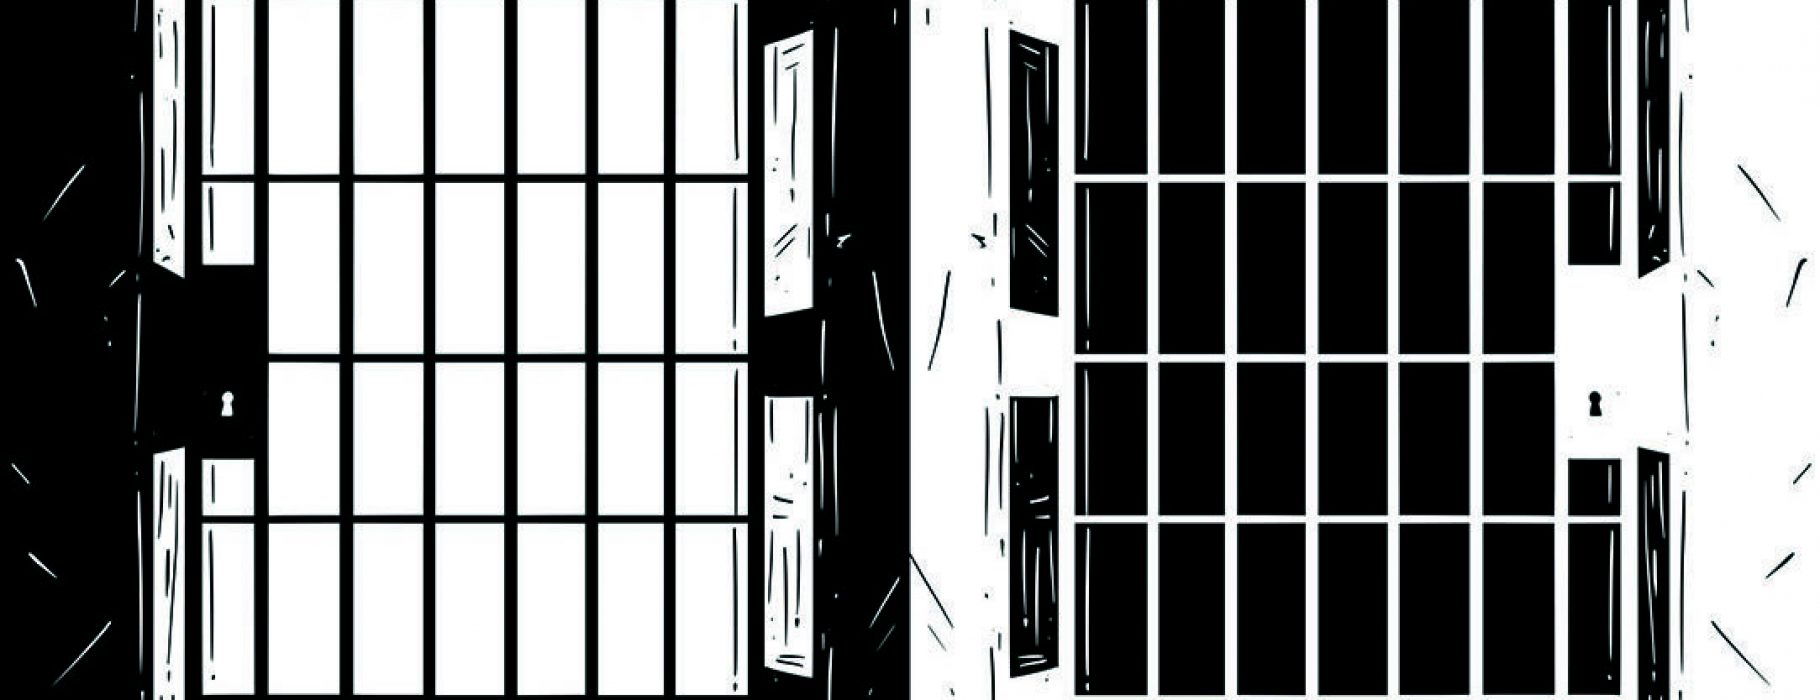 A black and white illustrated rendering of the door of a prison rendered in two parts, with the second inverting the colors of the first